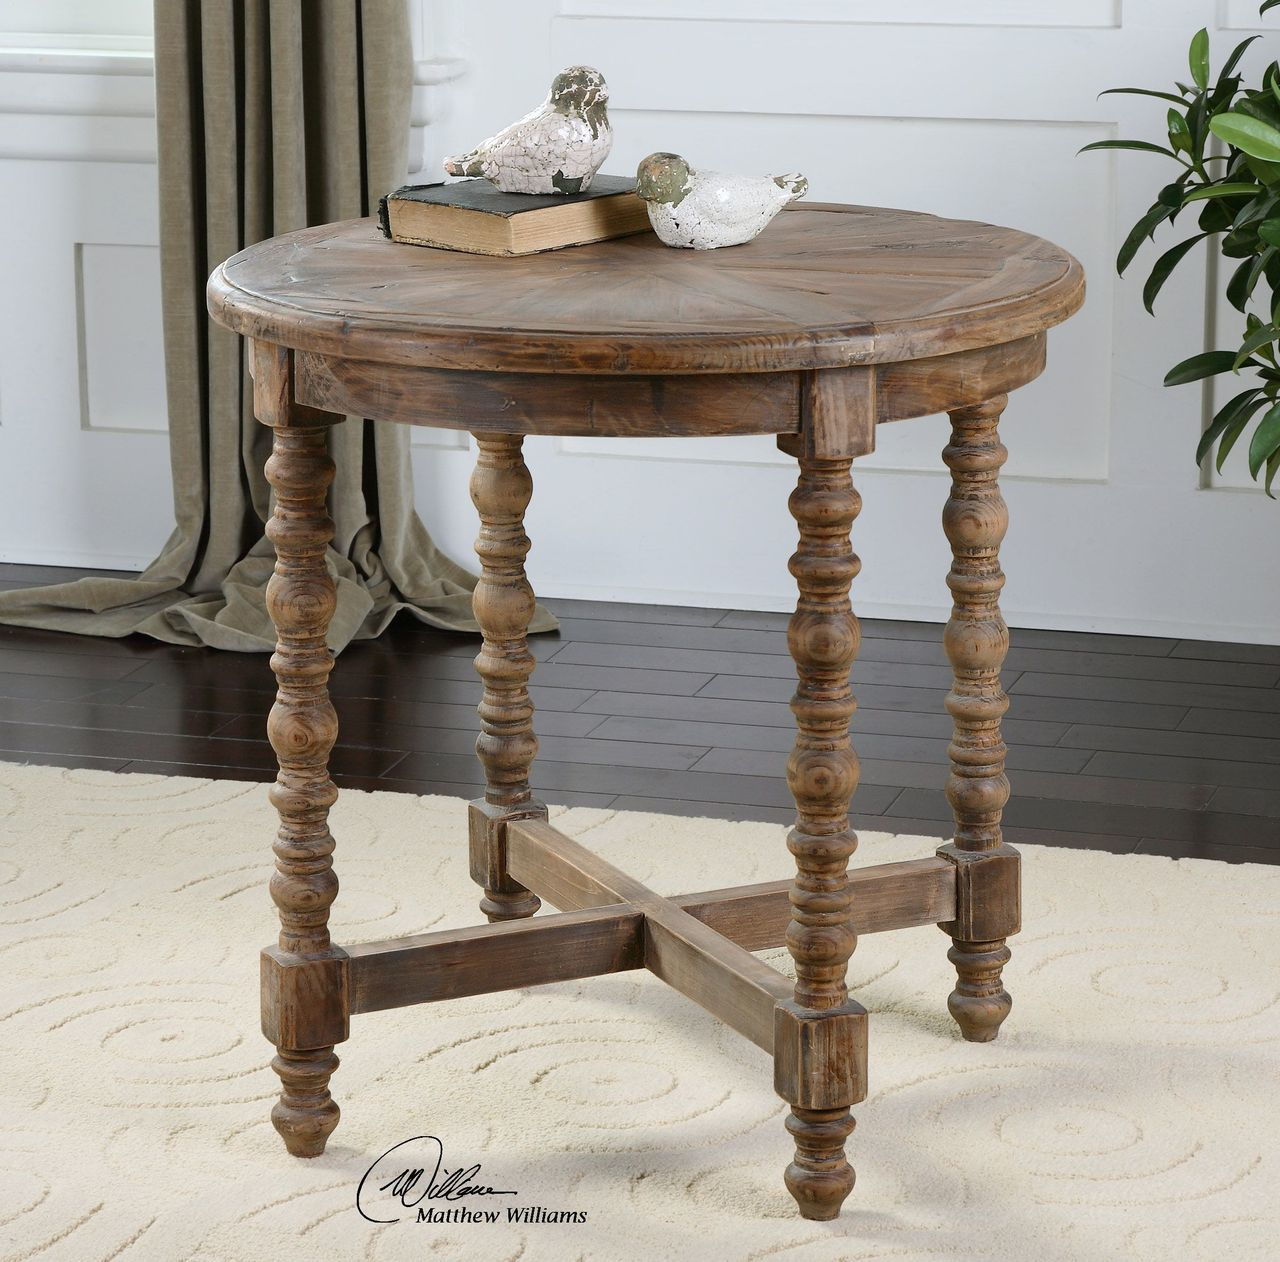 Rustic Wood Spindle Leg End Table With Sunburst Top Wood End Tables Sofa End Tables End Tables [ 1262 x 1280 Pixel ]